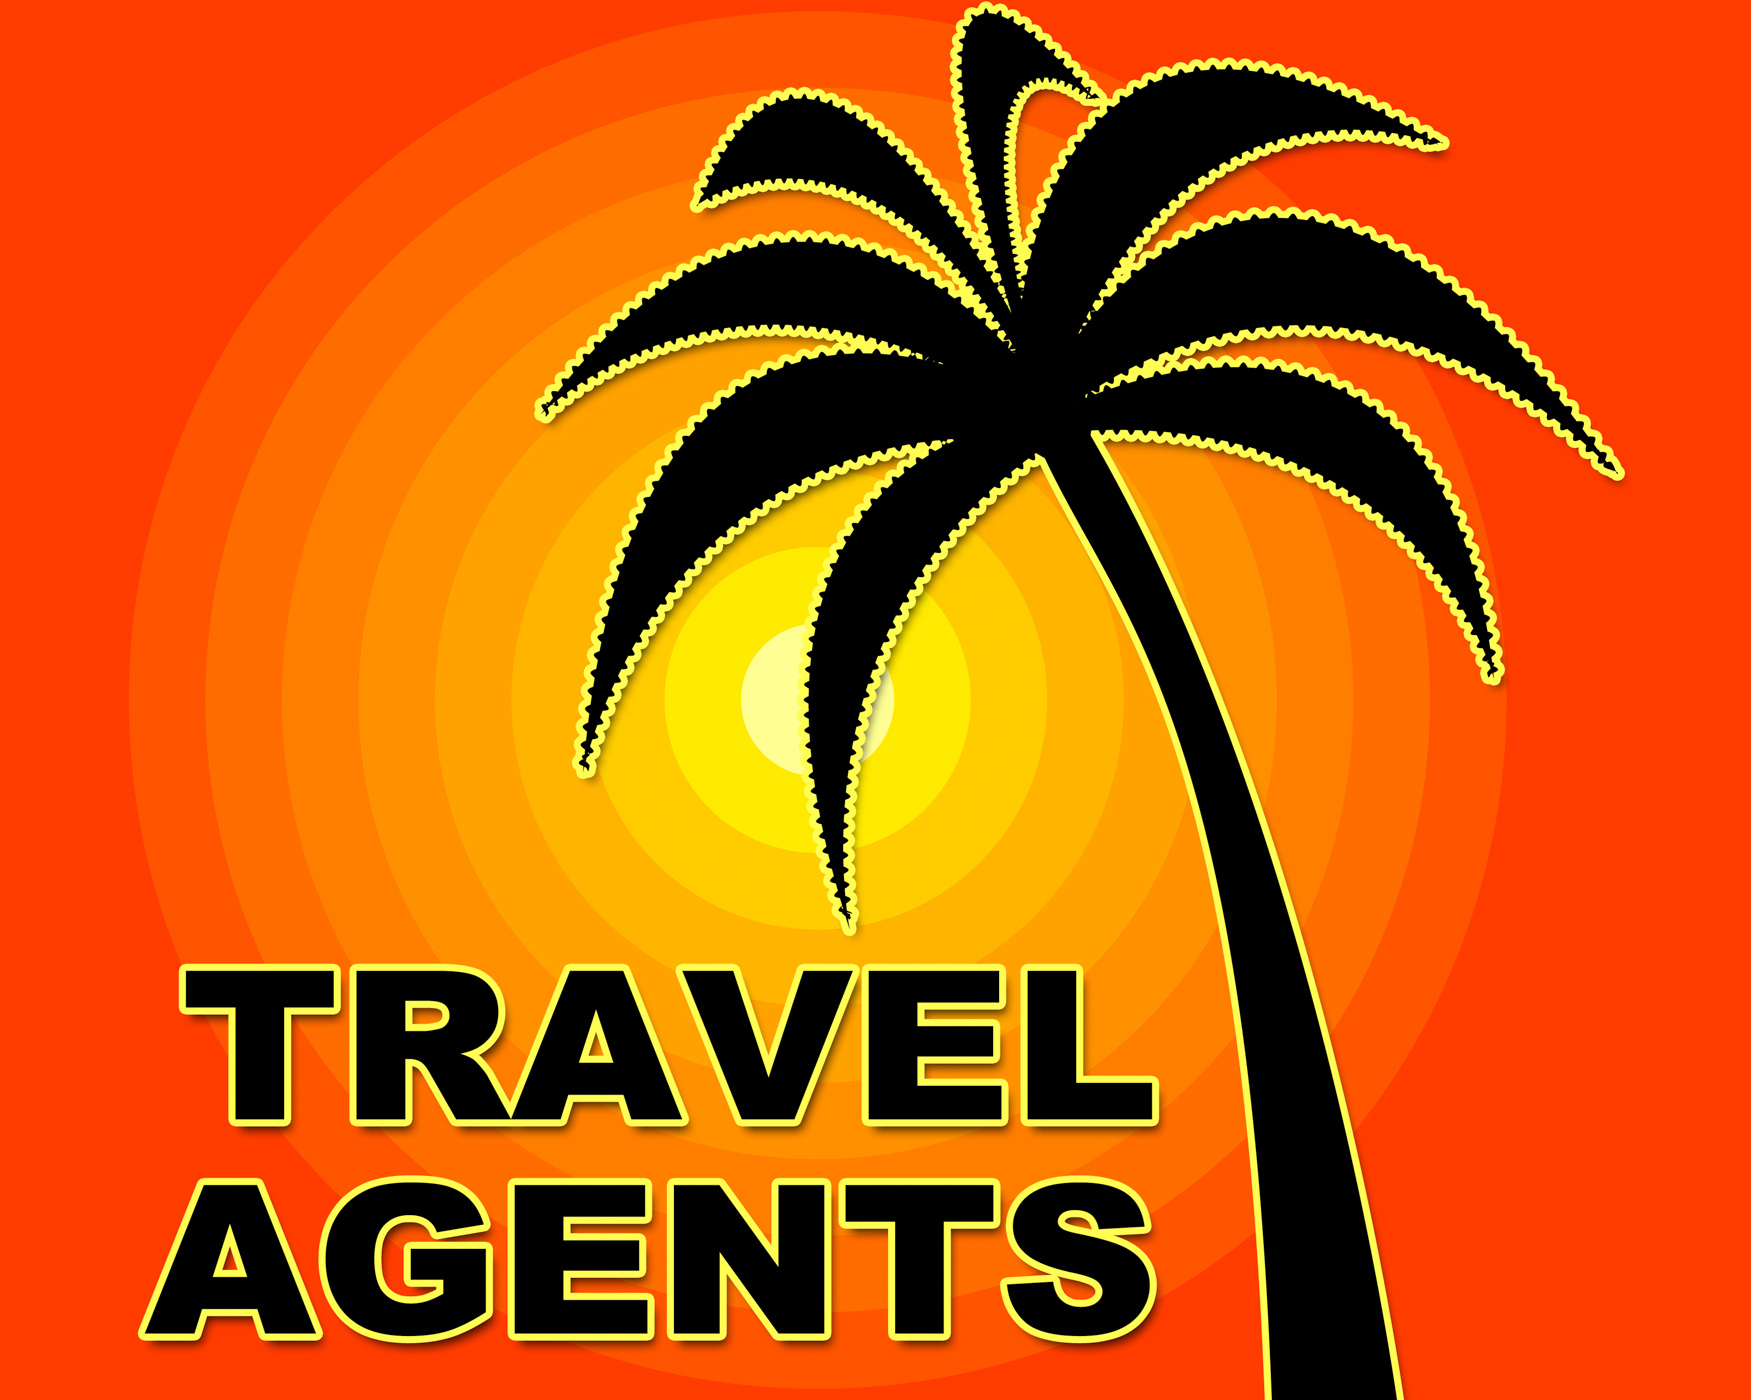 Travel agents means holidays holiday and journey photo